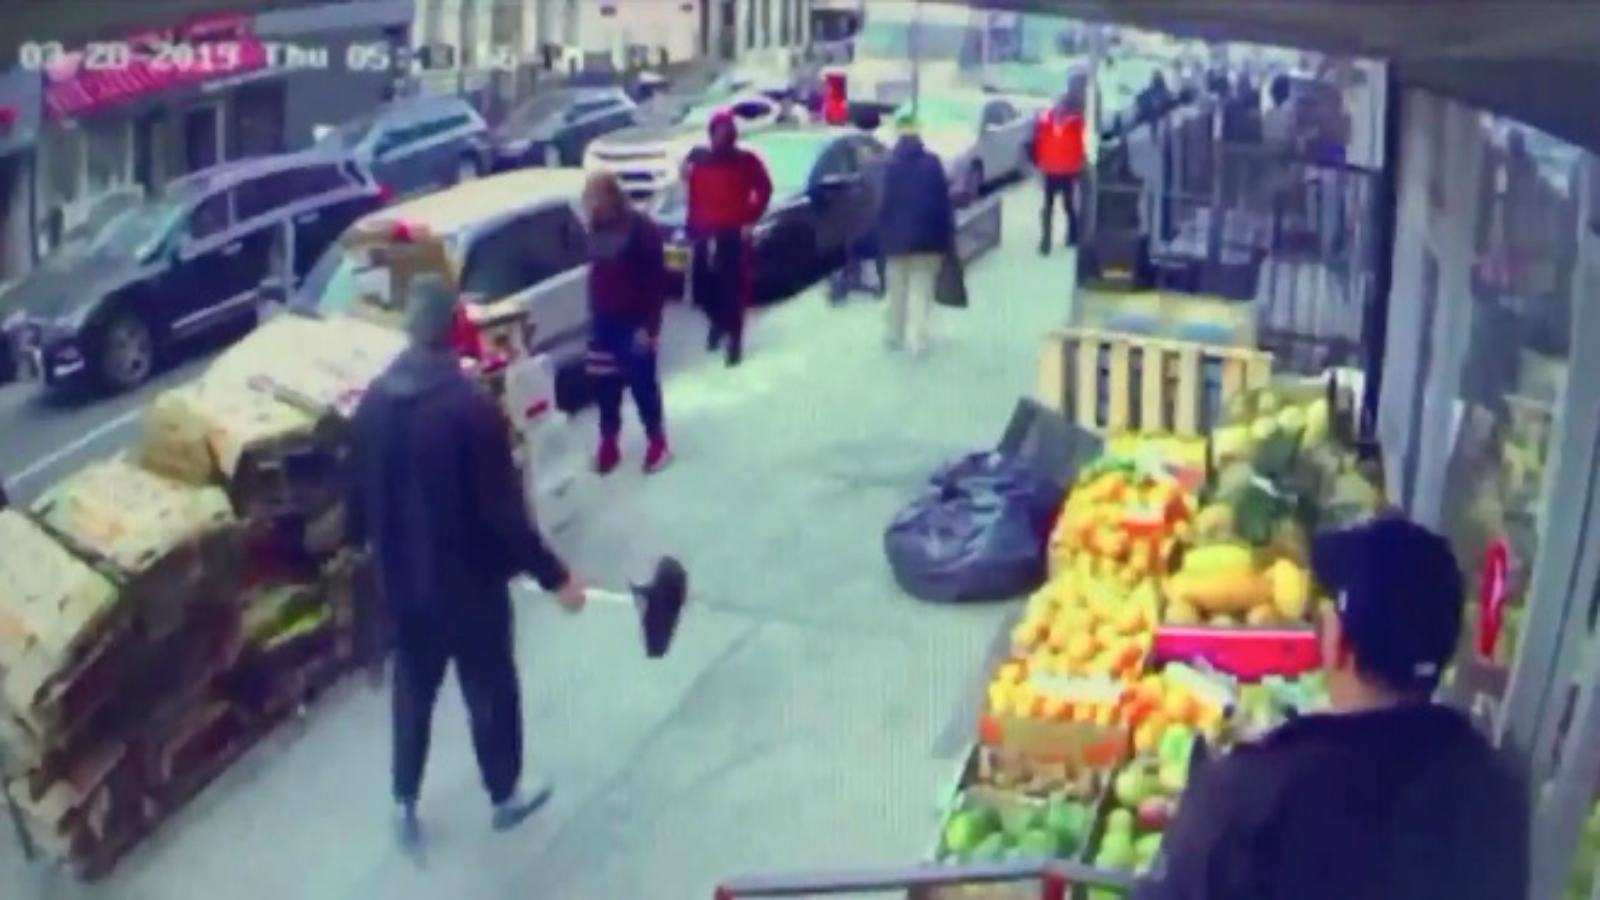 Watch: New York Man Armed With Bicycle Seat Defends Teen Attacked By Group Of People thumbnail